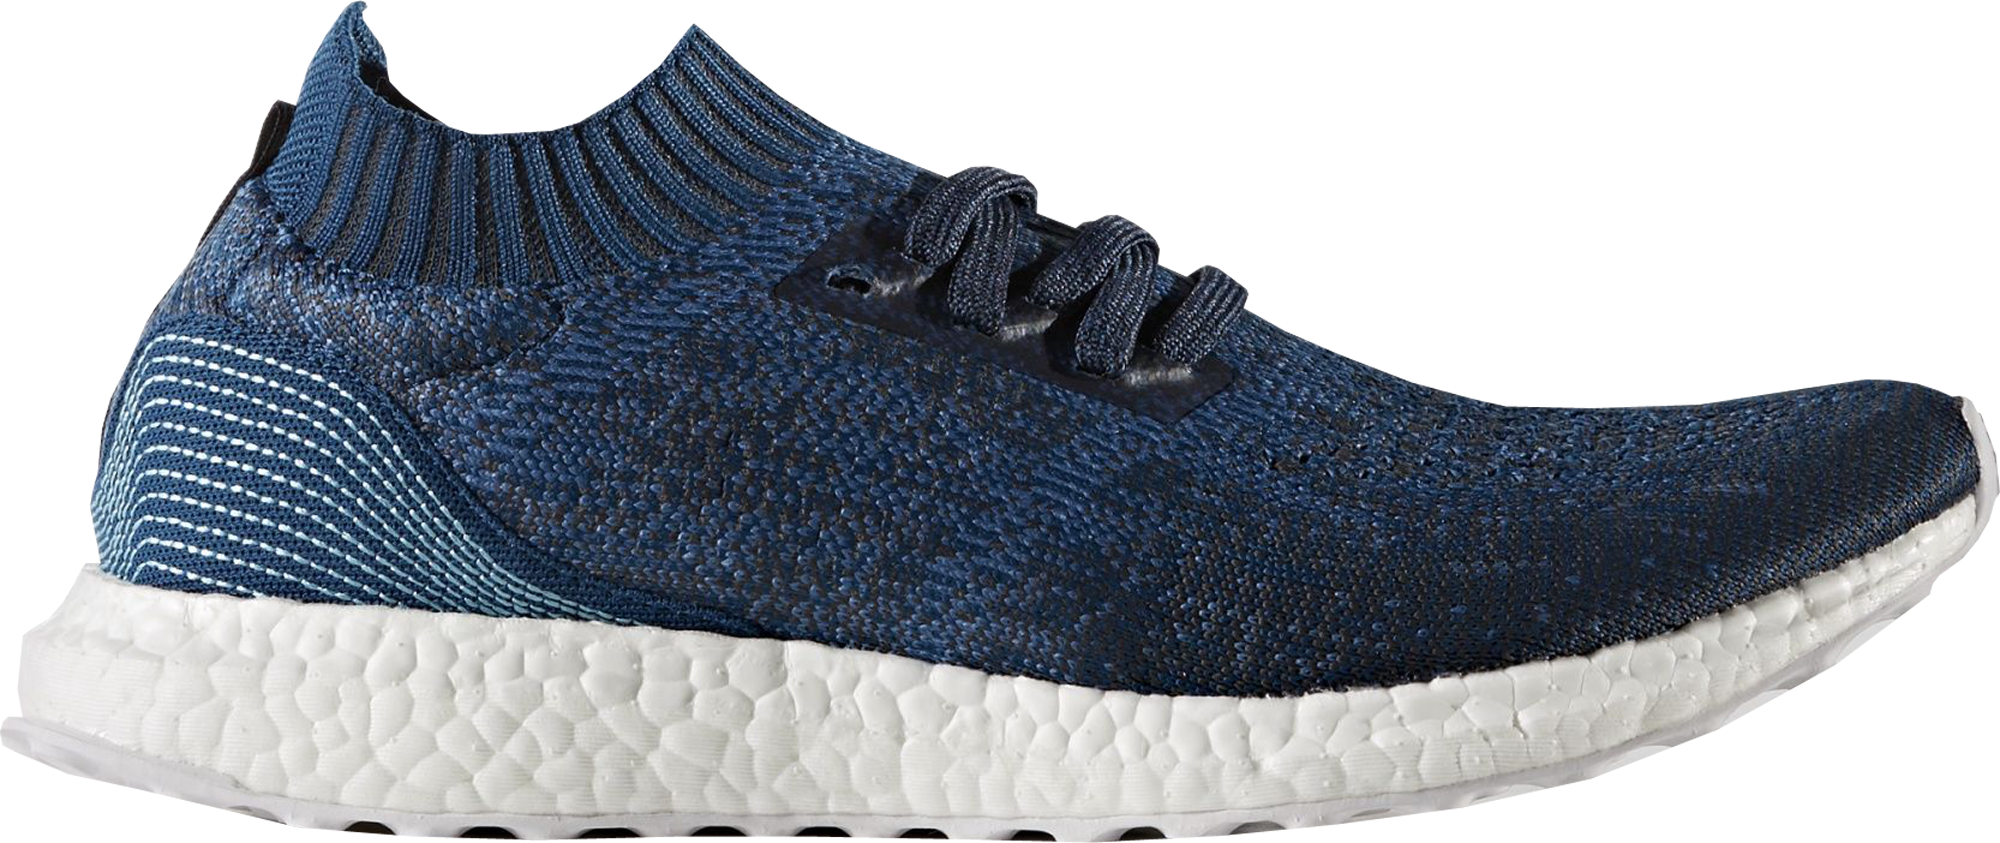 8b358af60 authentic adidas ultra boost uncaged parley bleu 81901 be72f